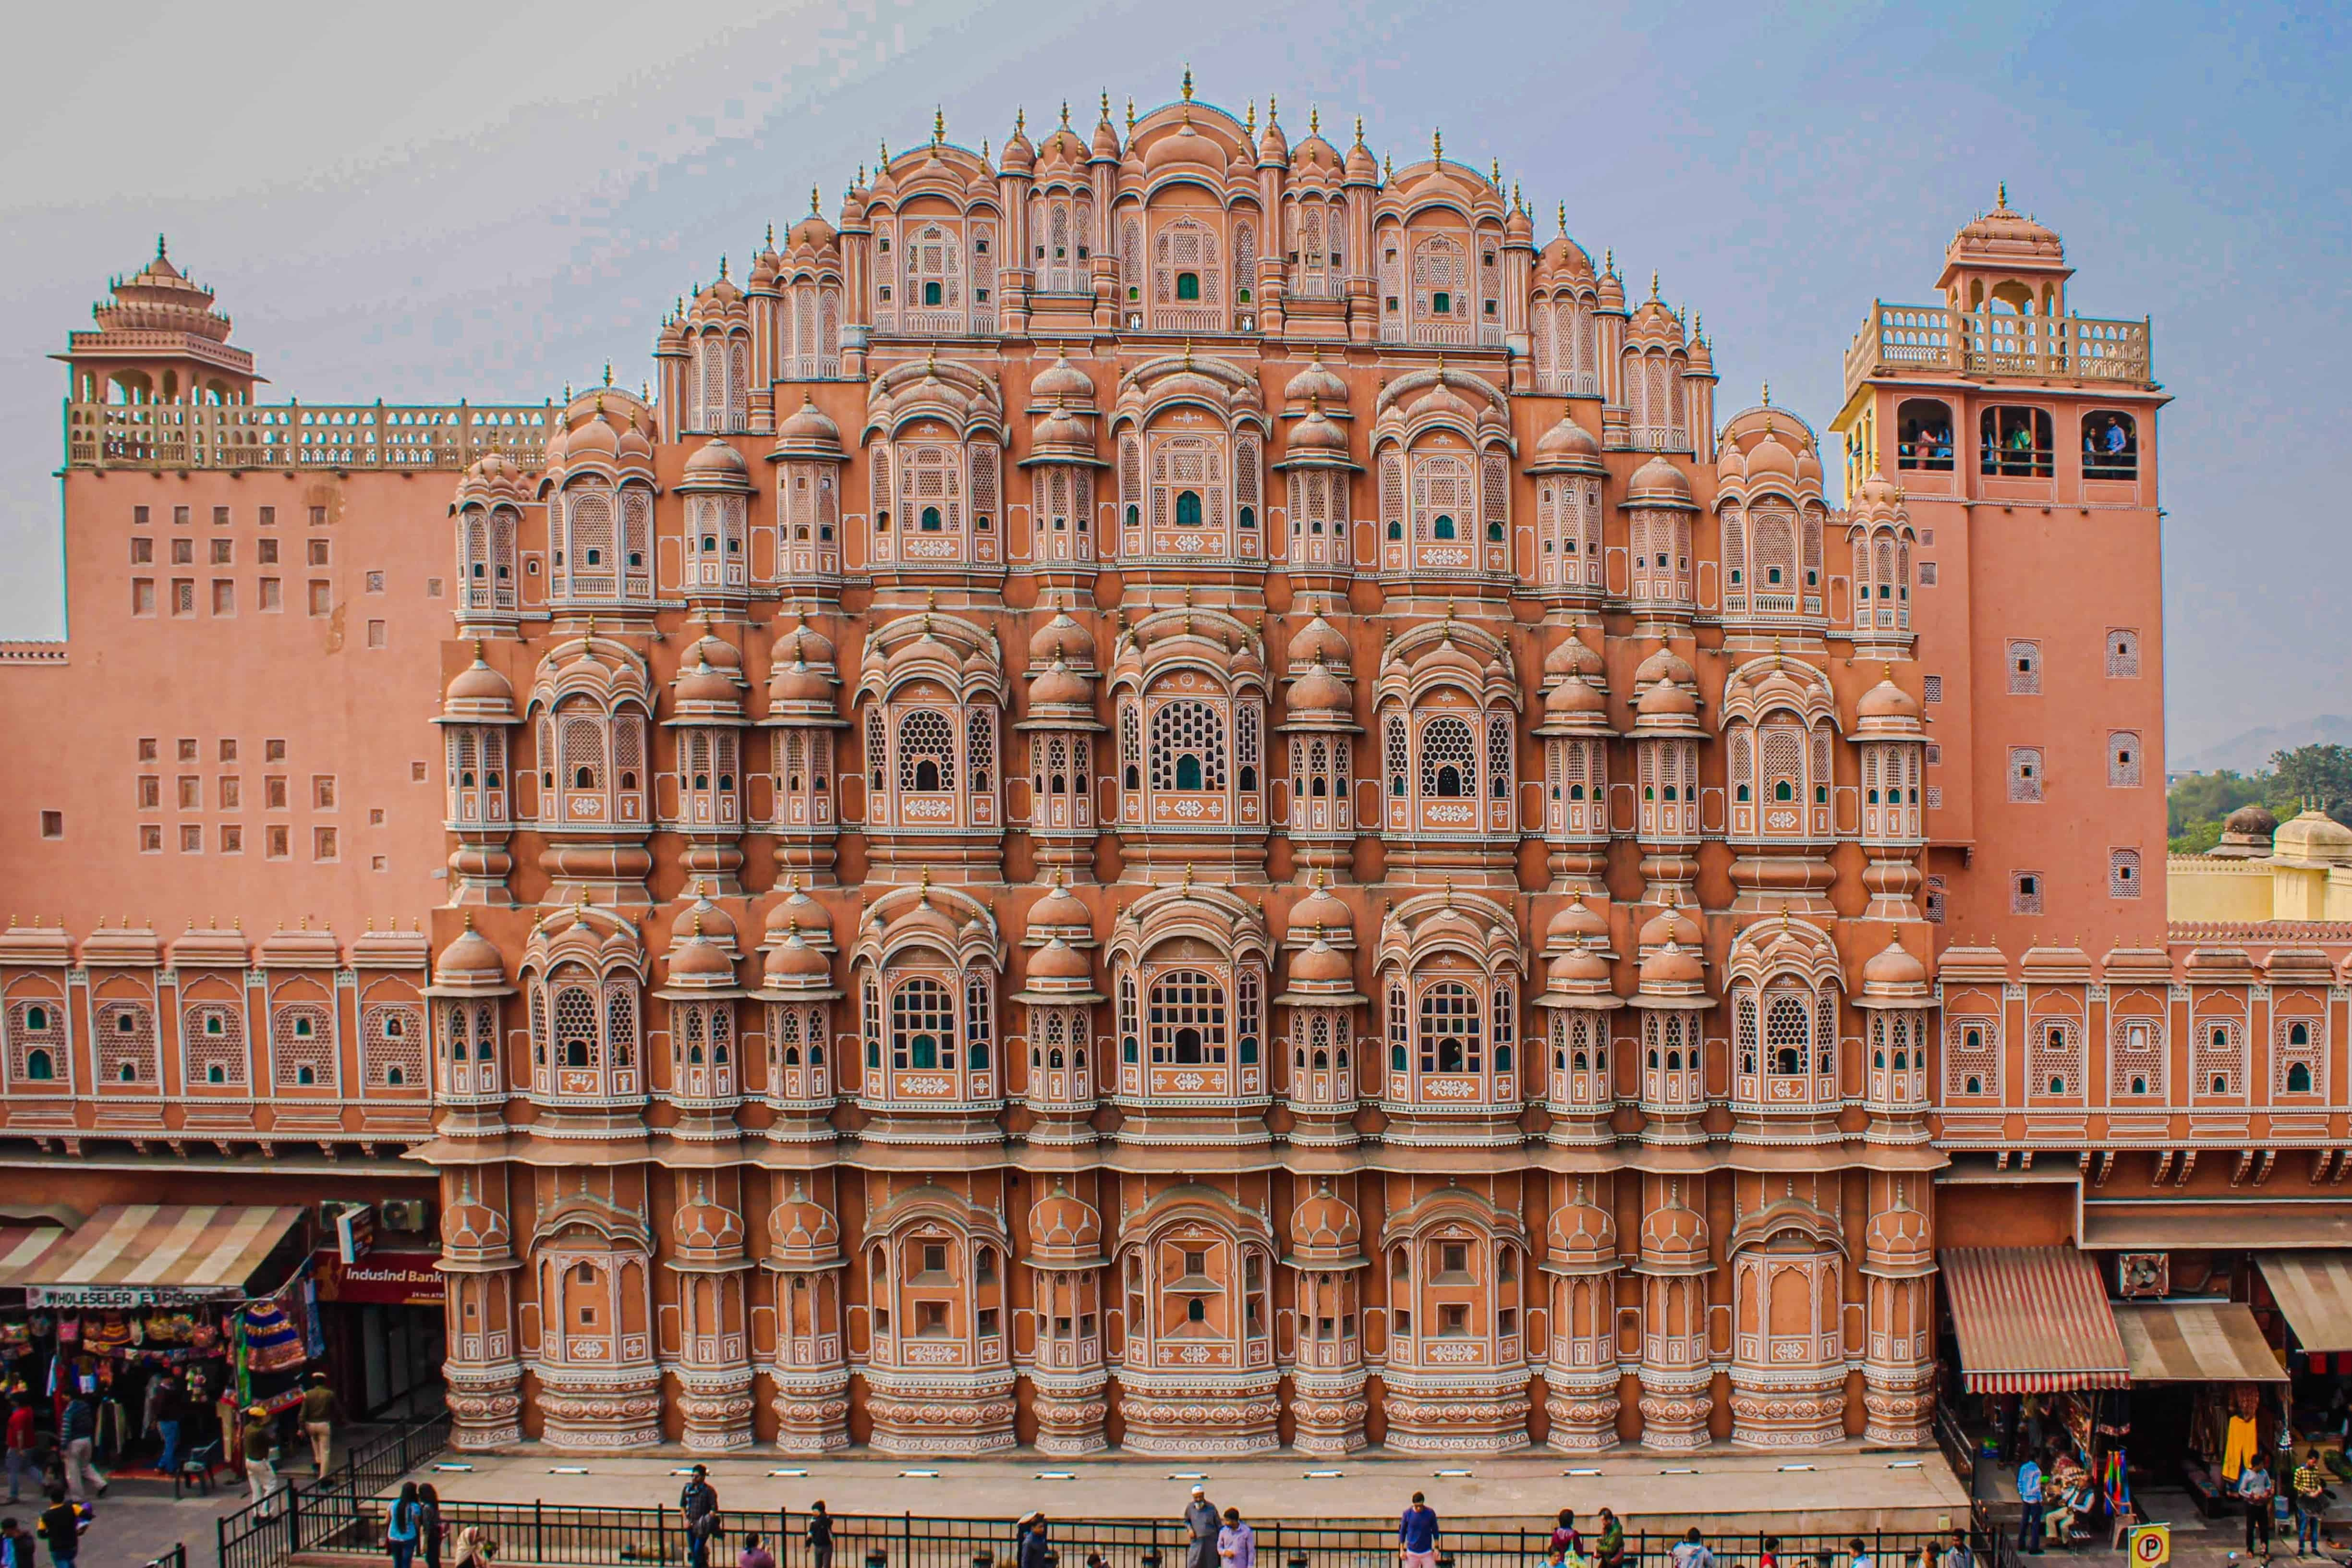 Hawa Mahal- One of the iconic places to visit in Jaipur